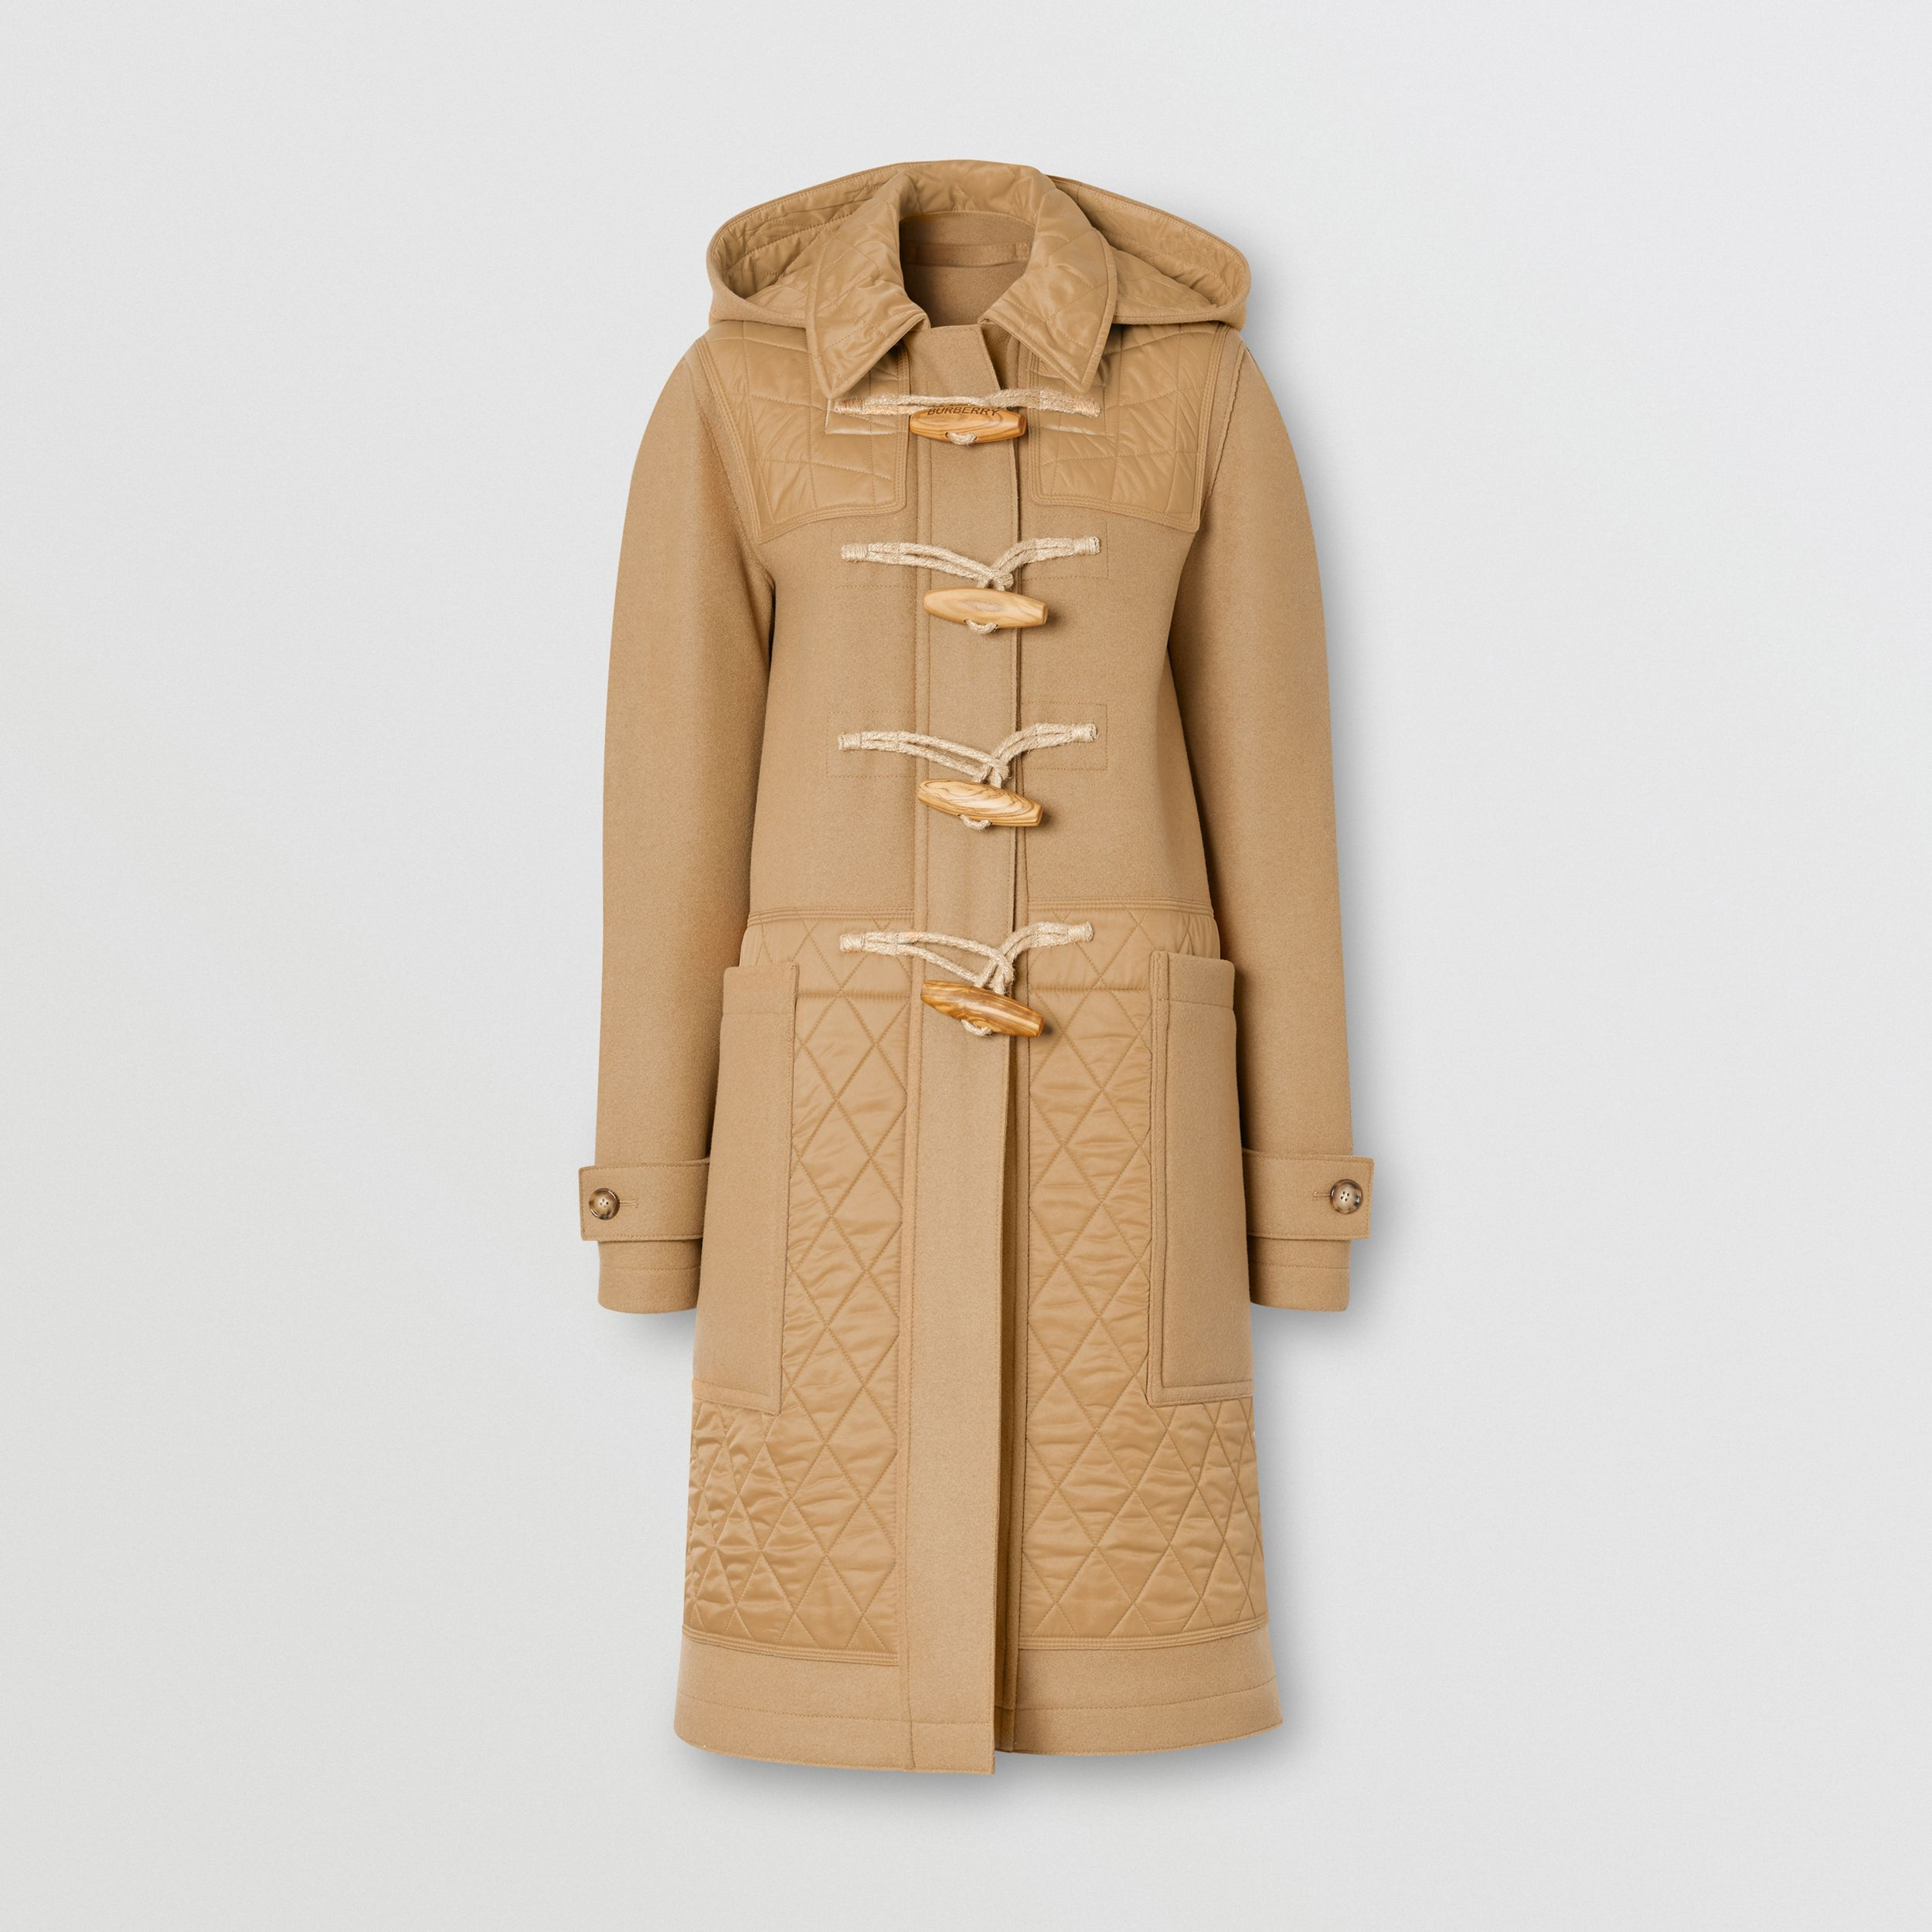 Diamond Quilted Panel Technical Wool Duffle Coat in Camel - Women | Burberry - 4